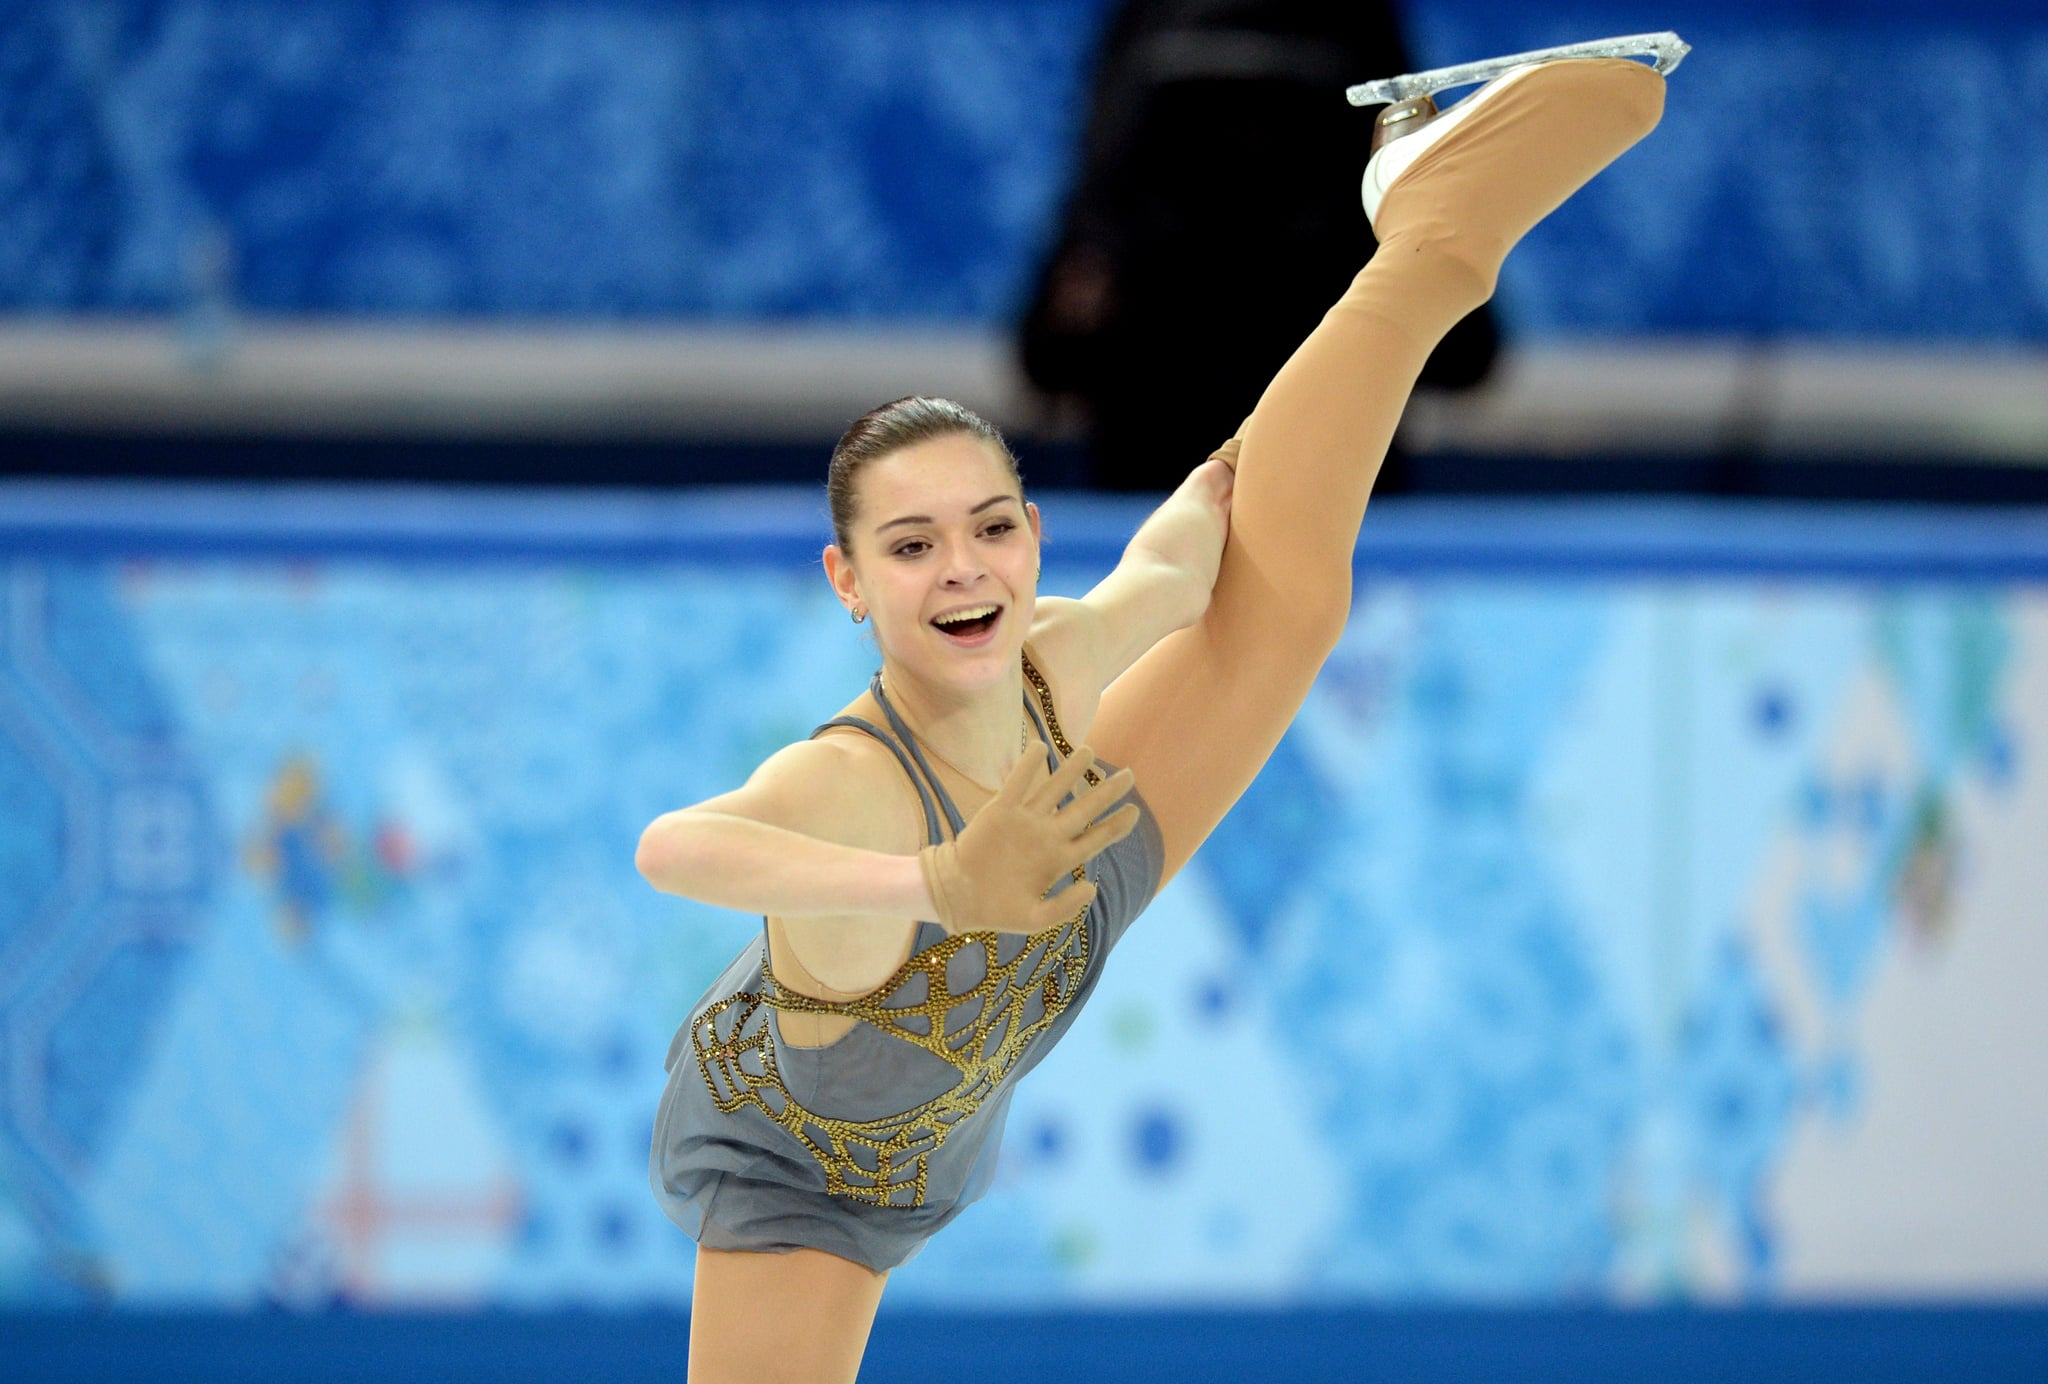 Next up was Russian Adelina Sotnikova, 17, who waved to the judges and crowd during her program.